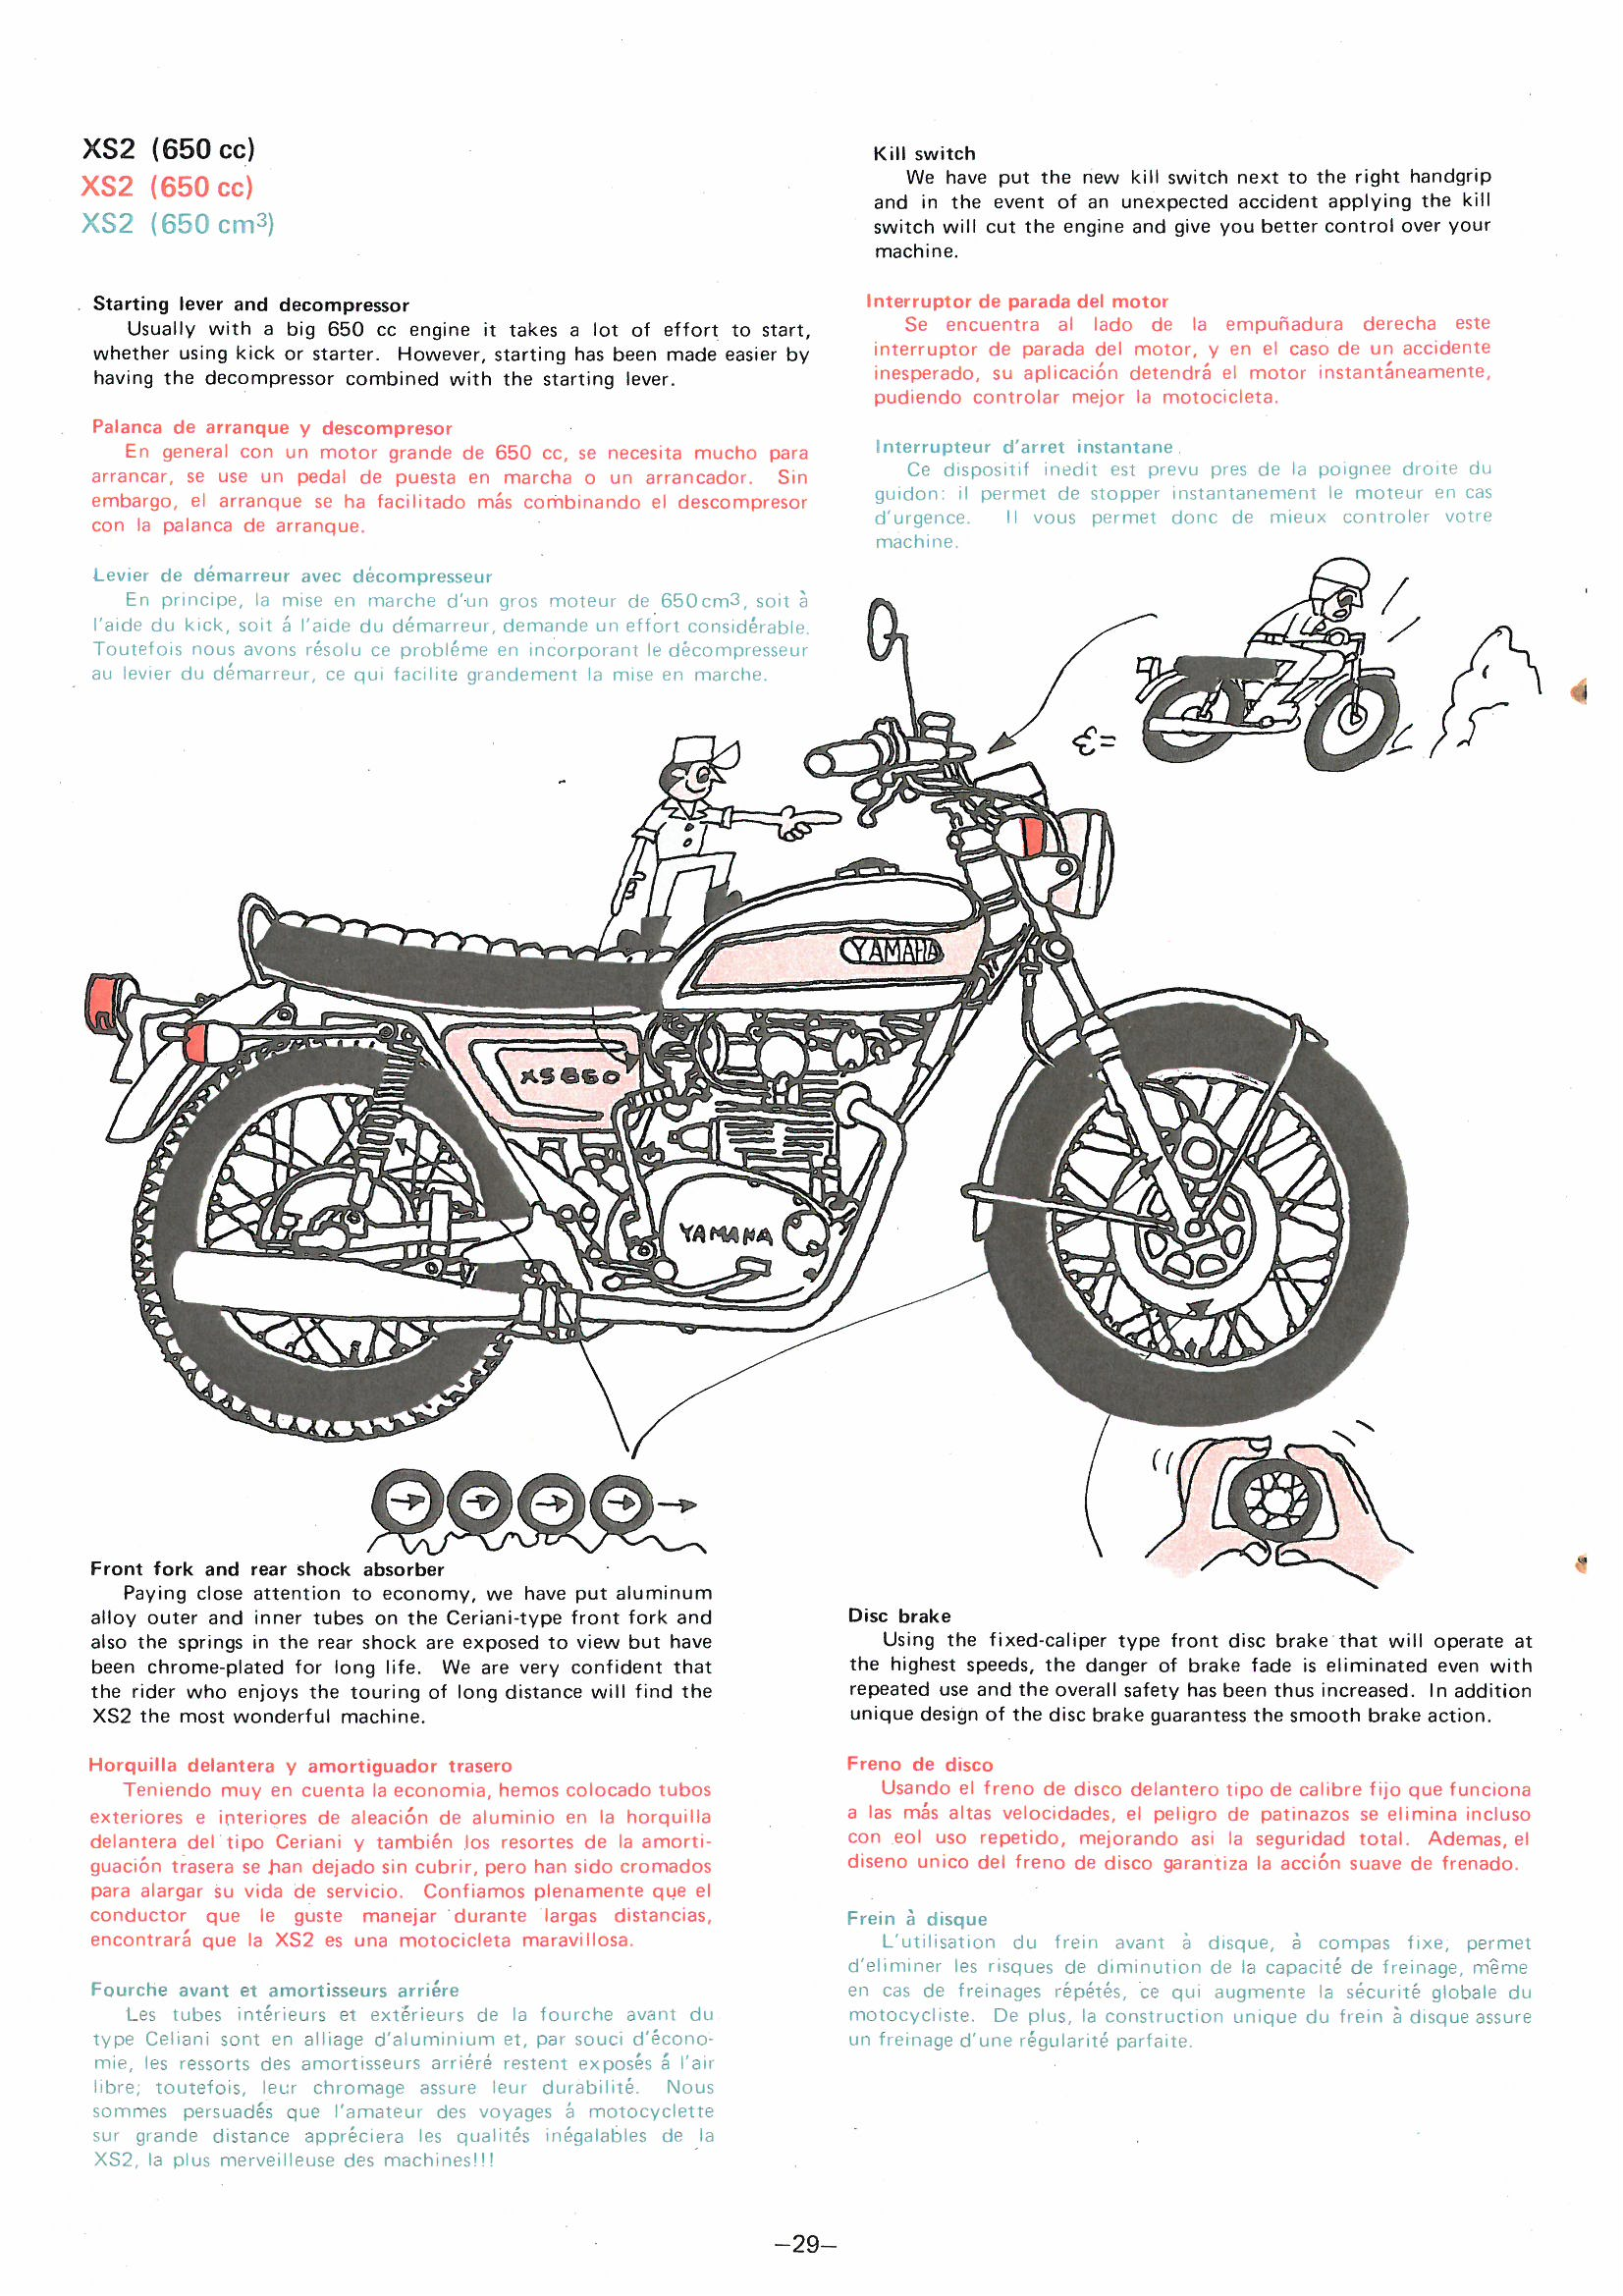 Exelent Triumph Chopper Wiring Diagram Sketch - Electrical Diagram ...